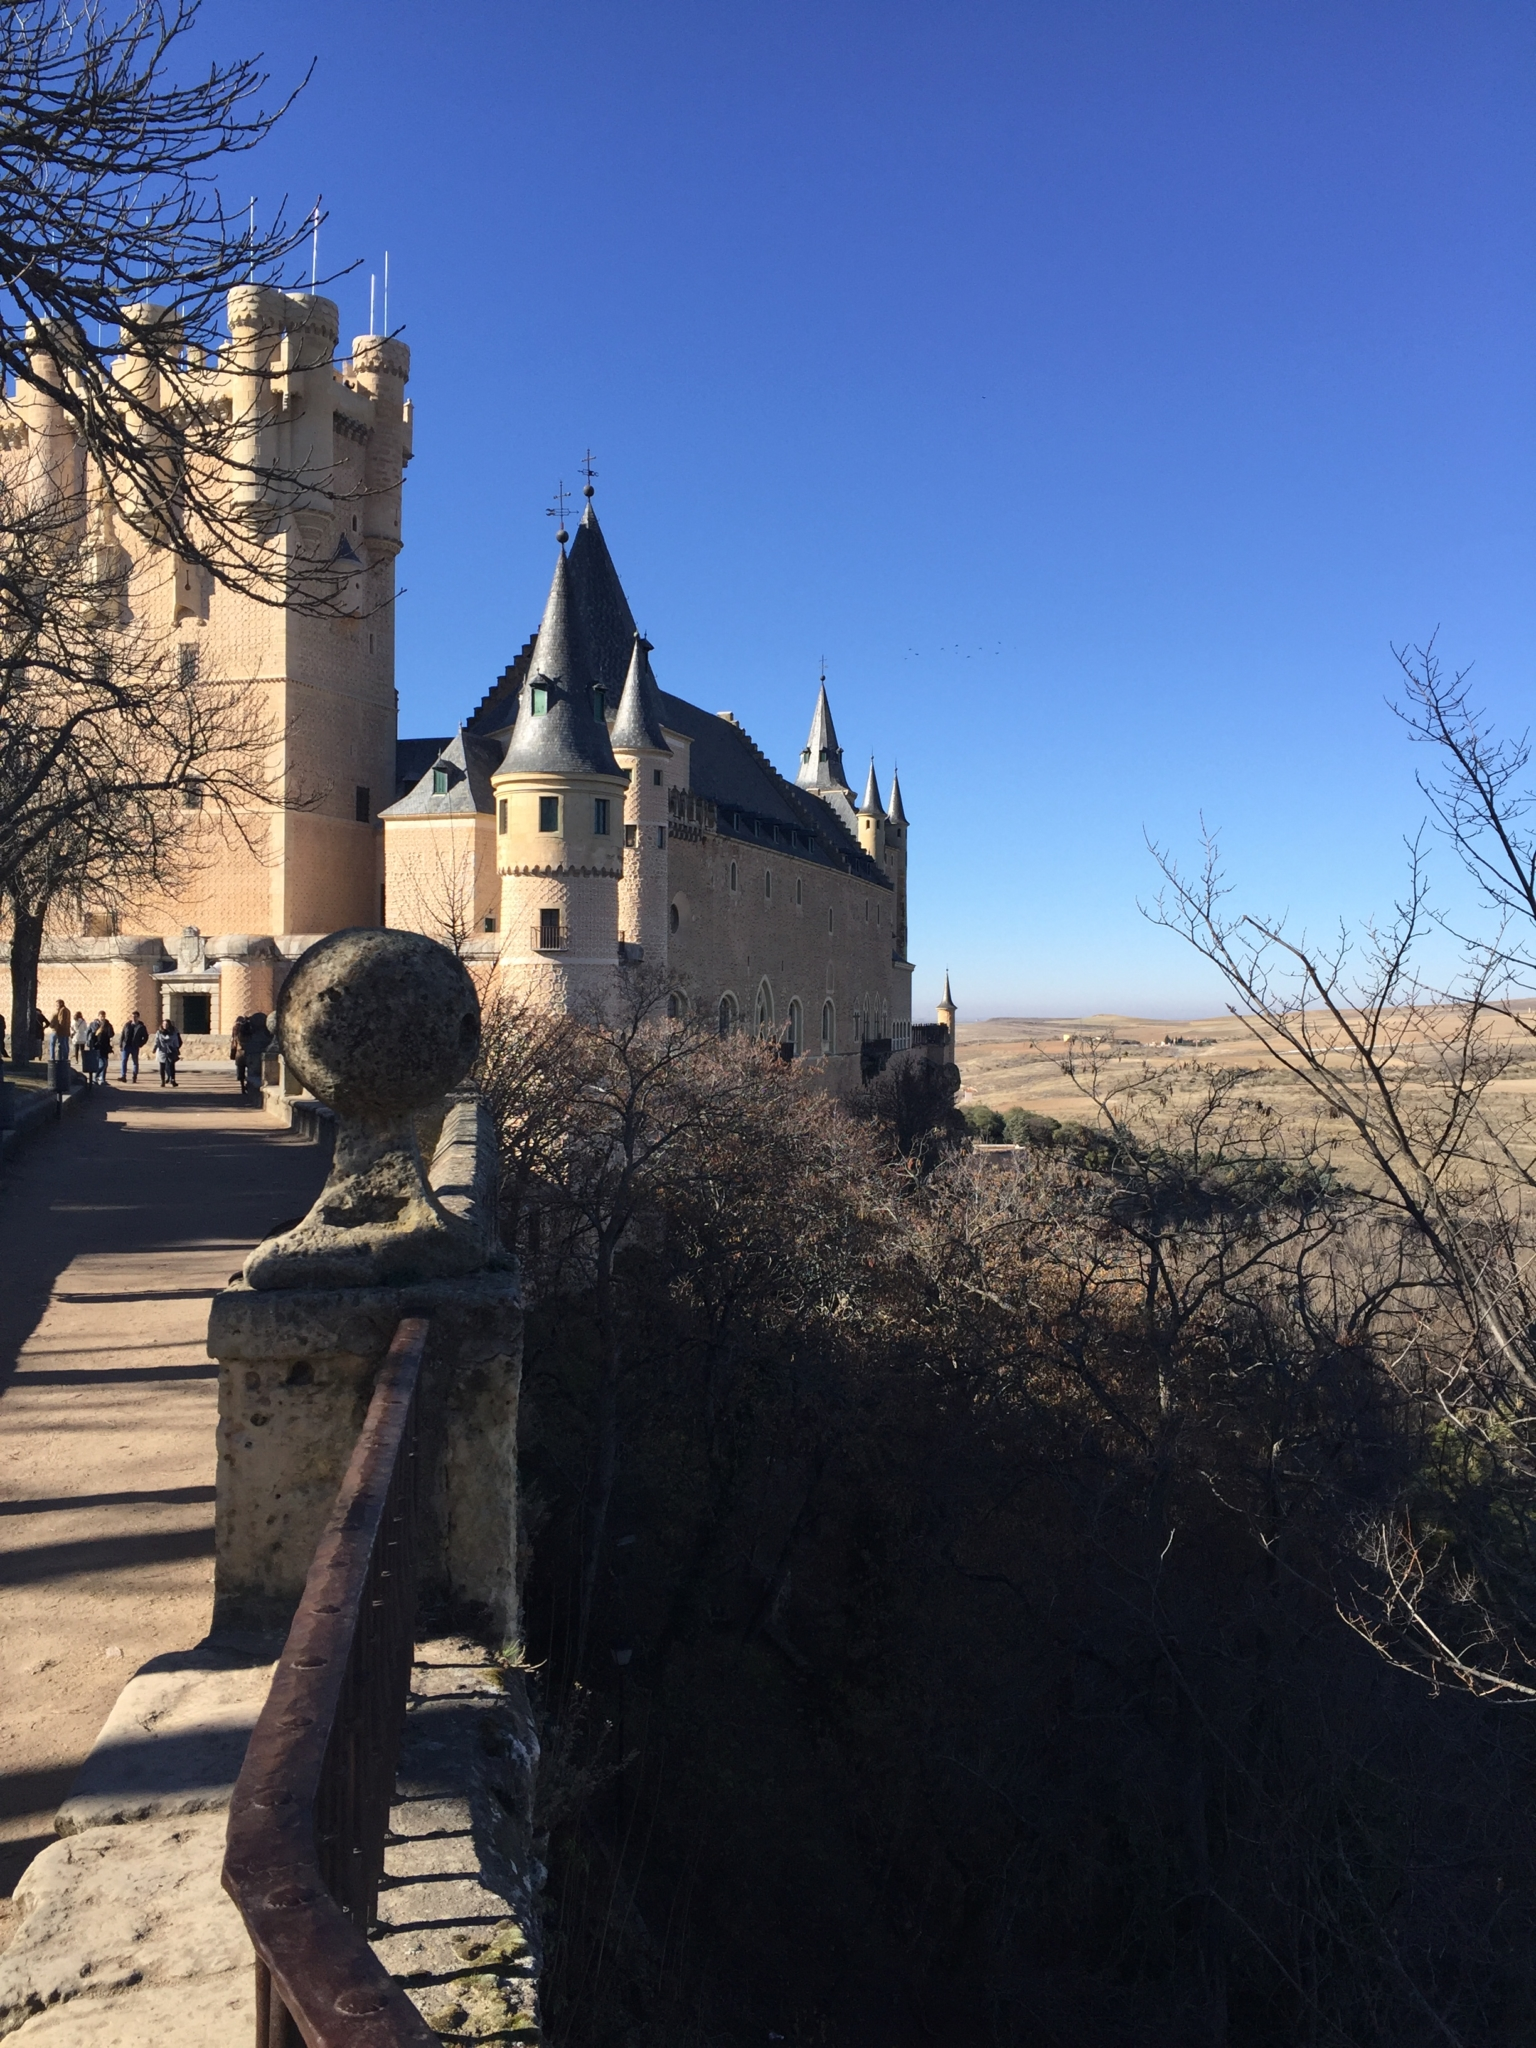 The castle for Cinderella or The Alcazar of Segovia.